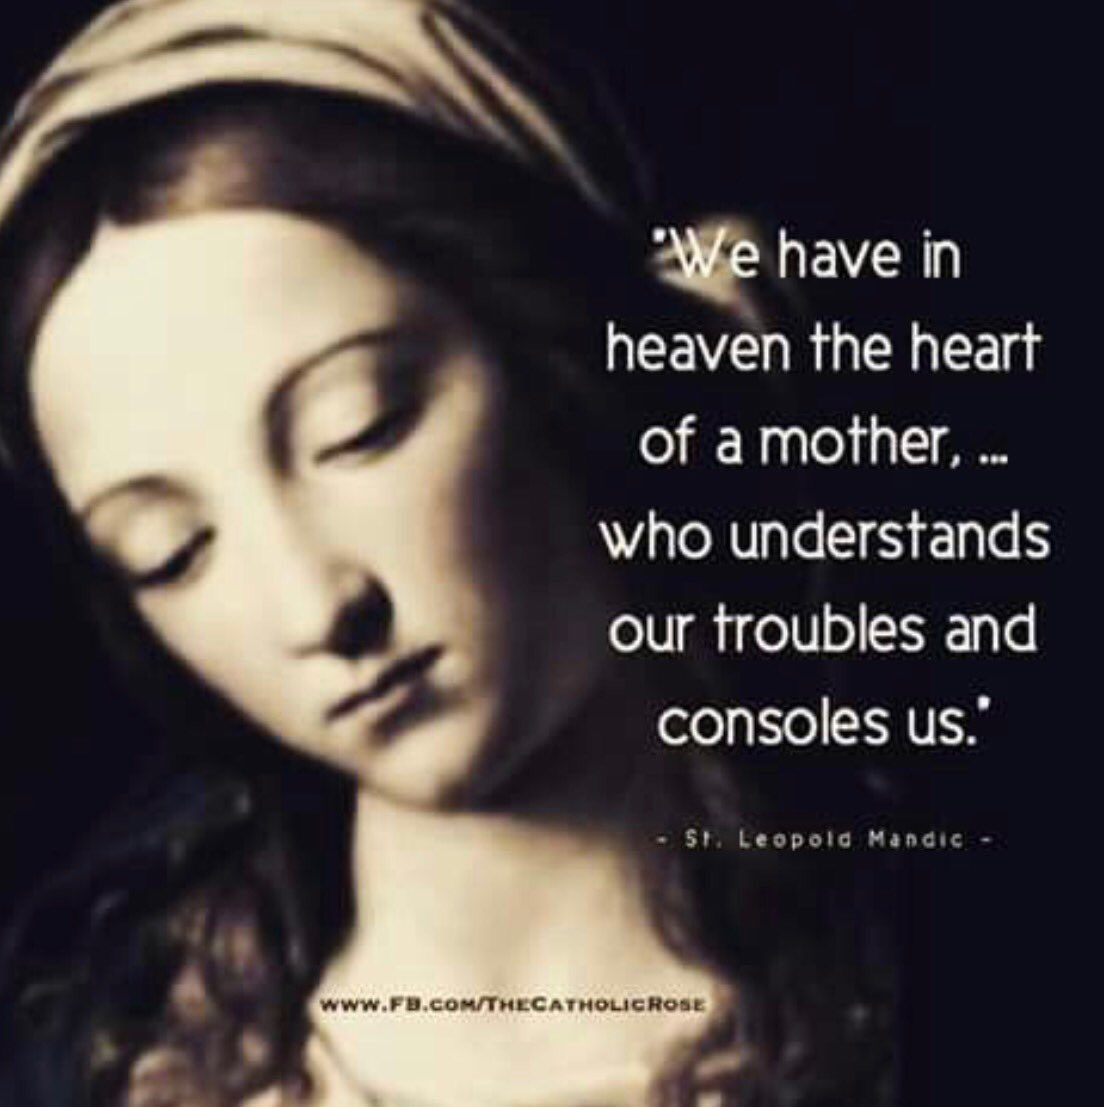 the heart of a mother in heaven